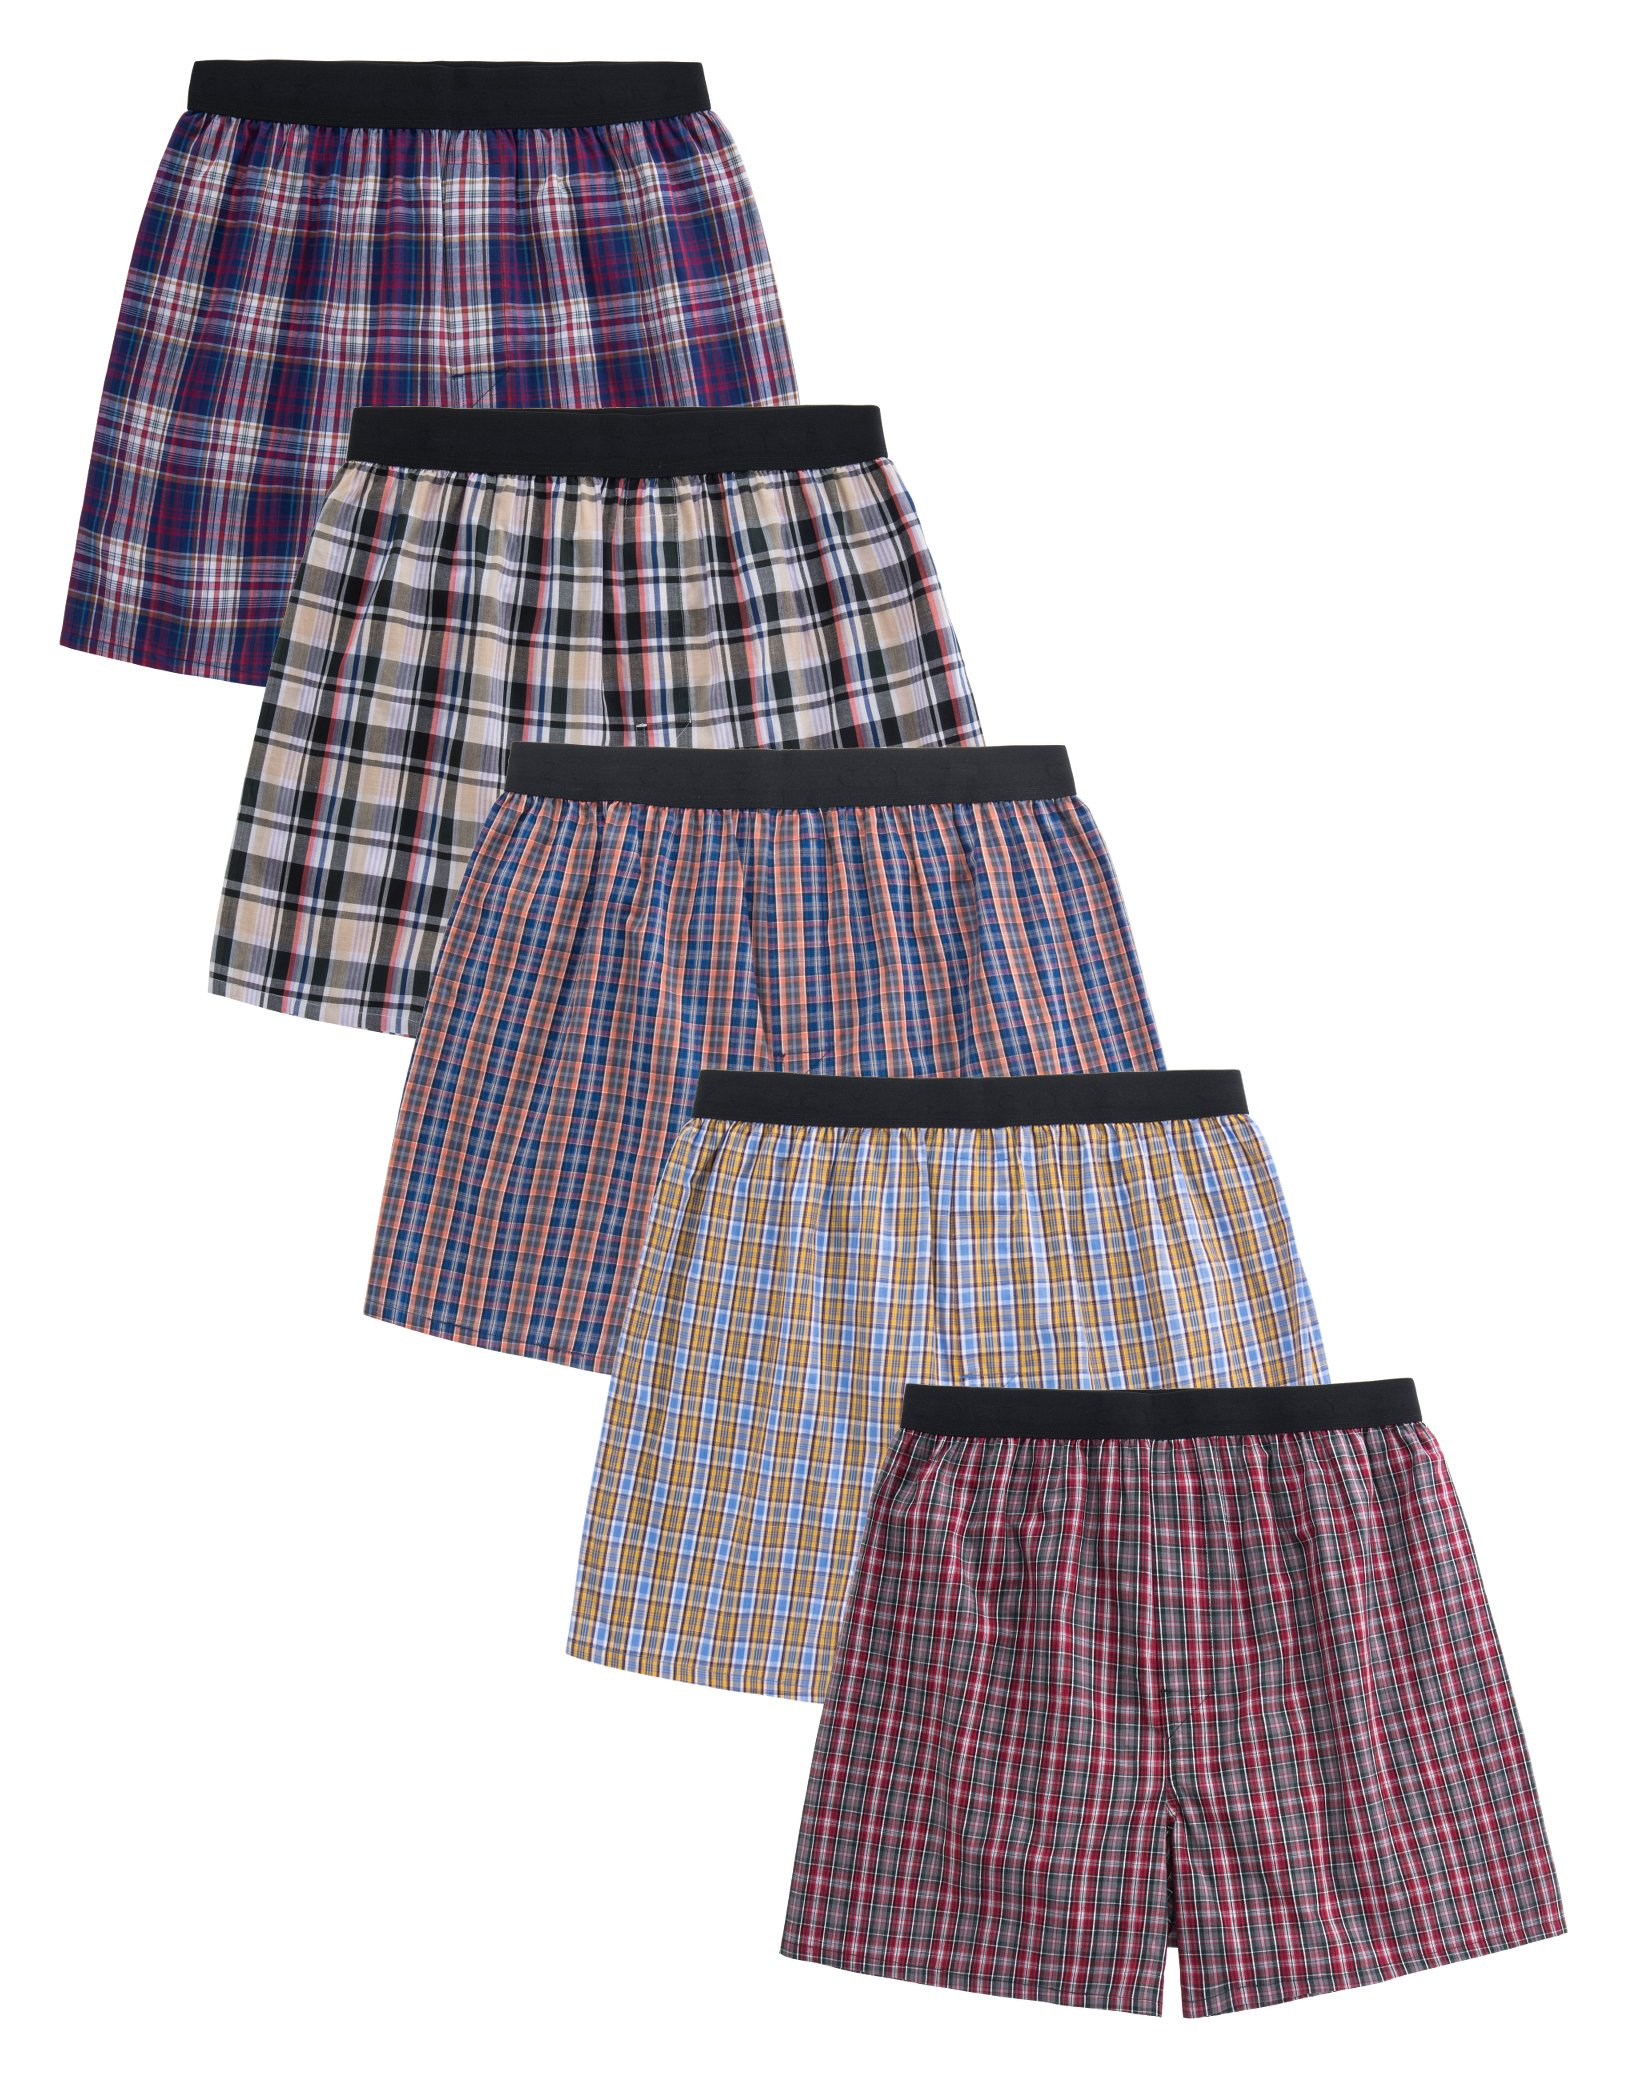 CYZ 5-Pack Men's 100% Cotton Woven Boxers Value Pack-Assorted-S